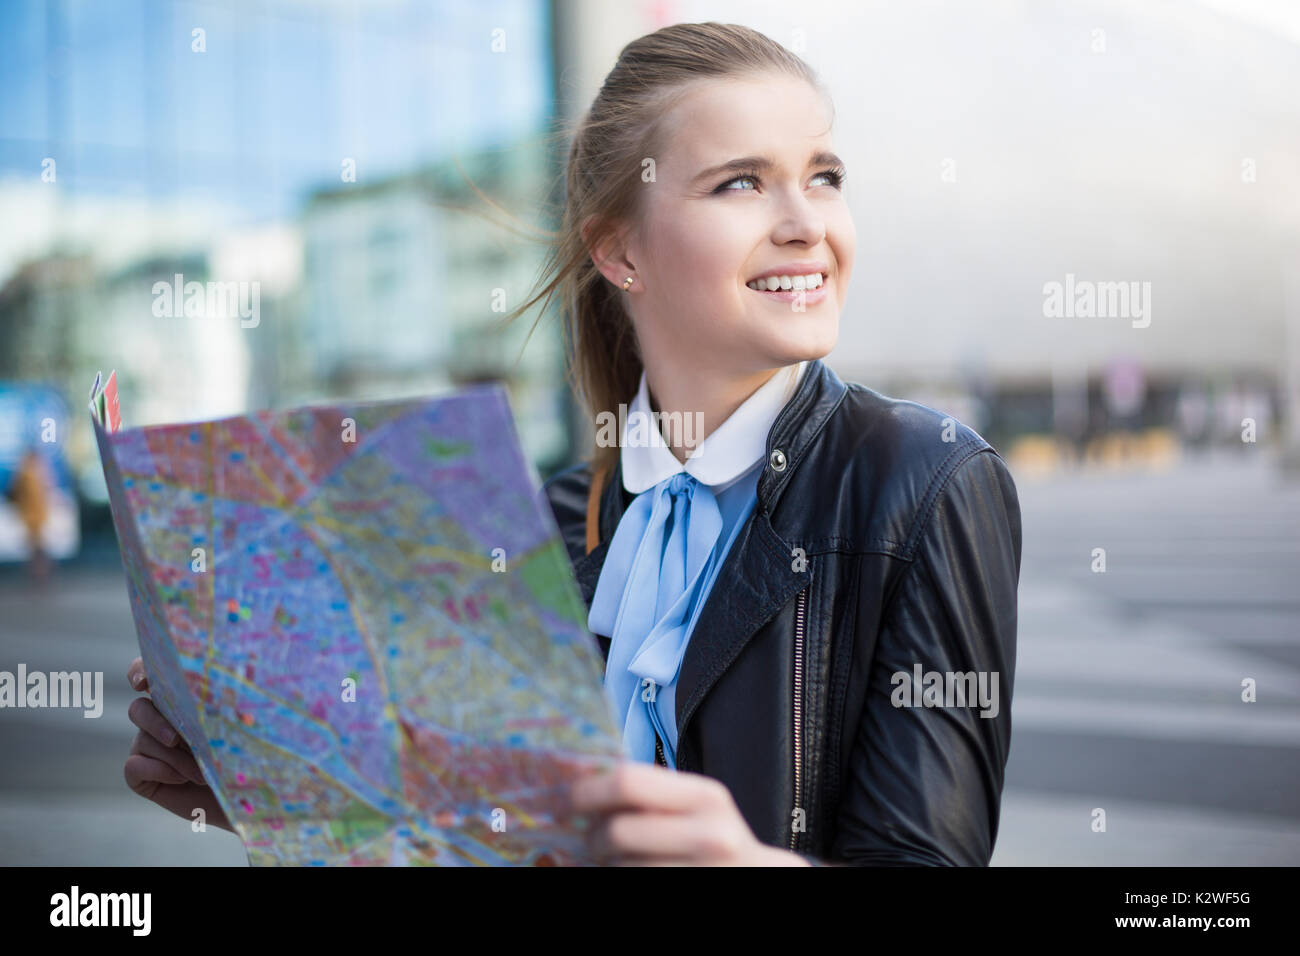 Smiling woman with city map in city - Stock Image